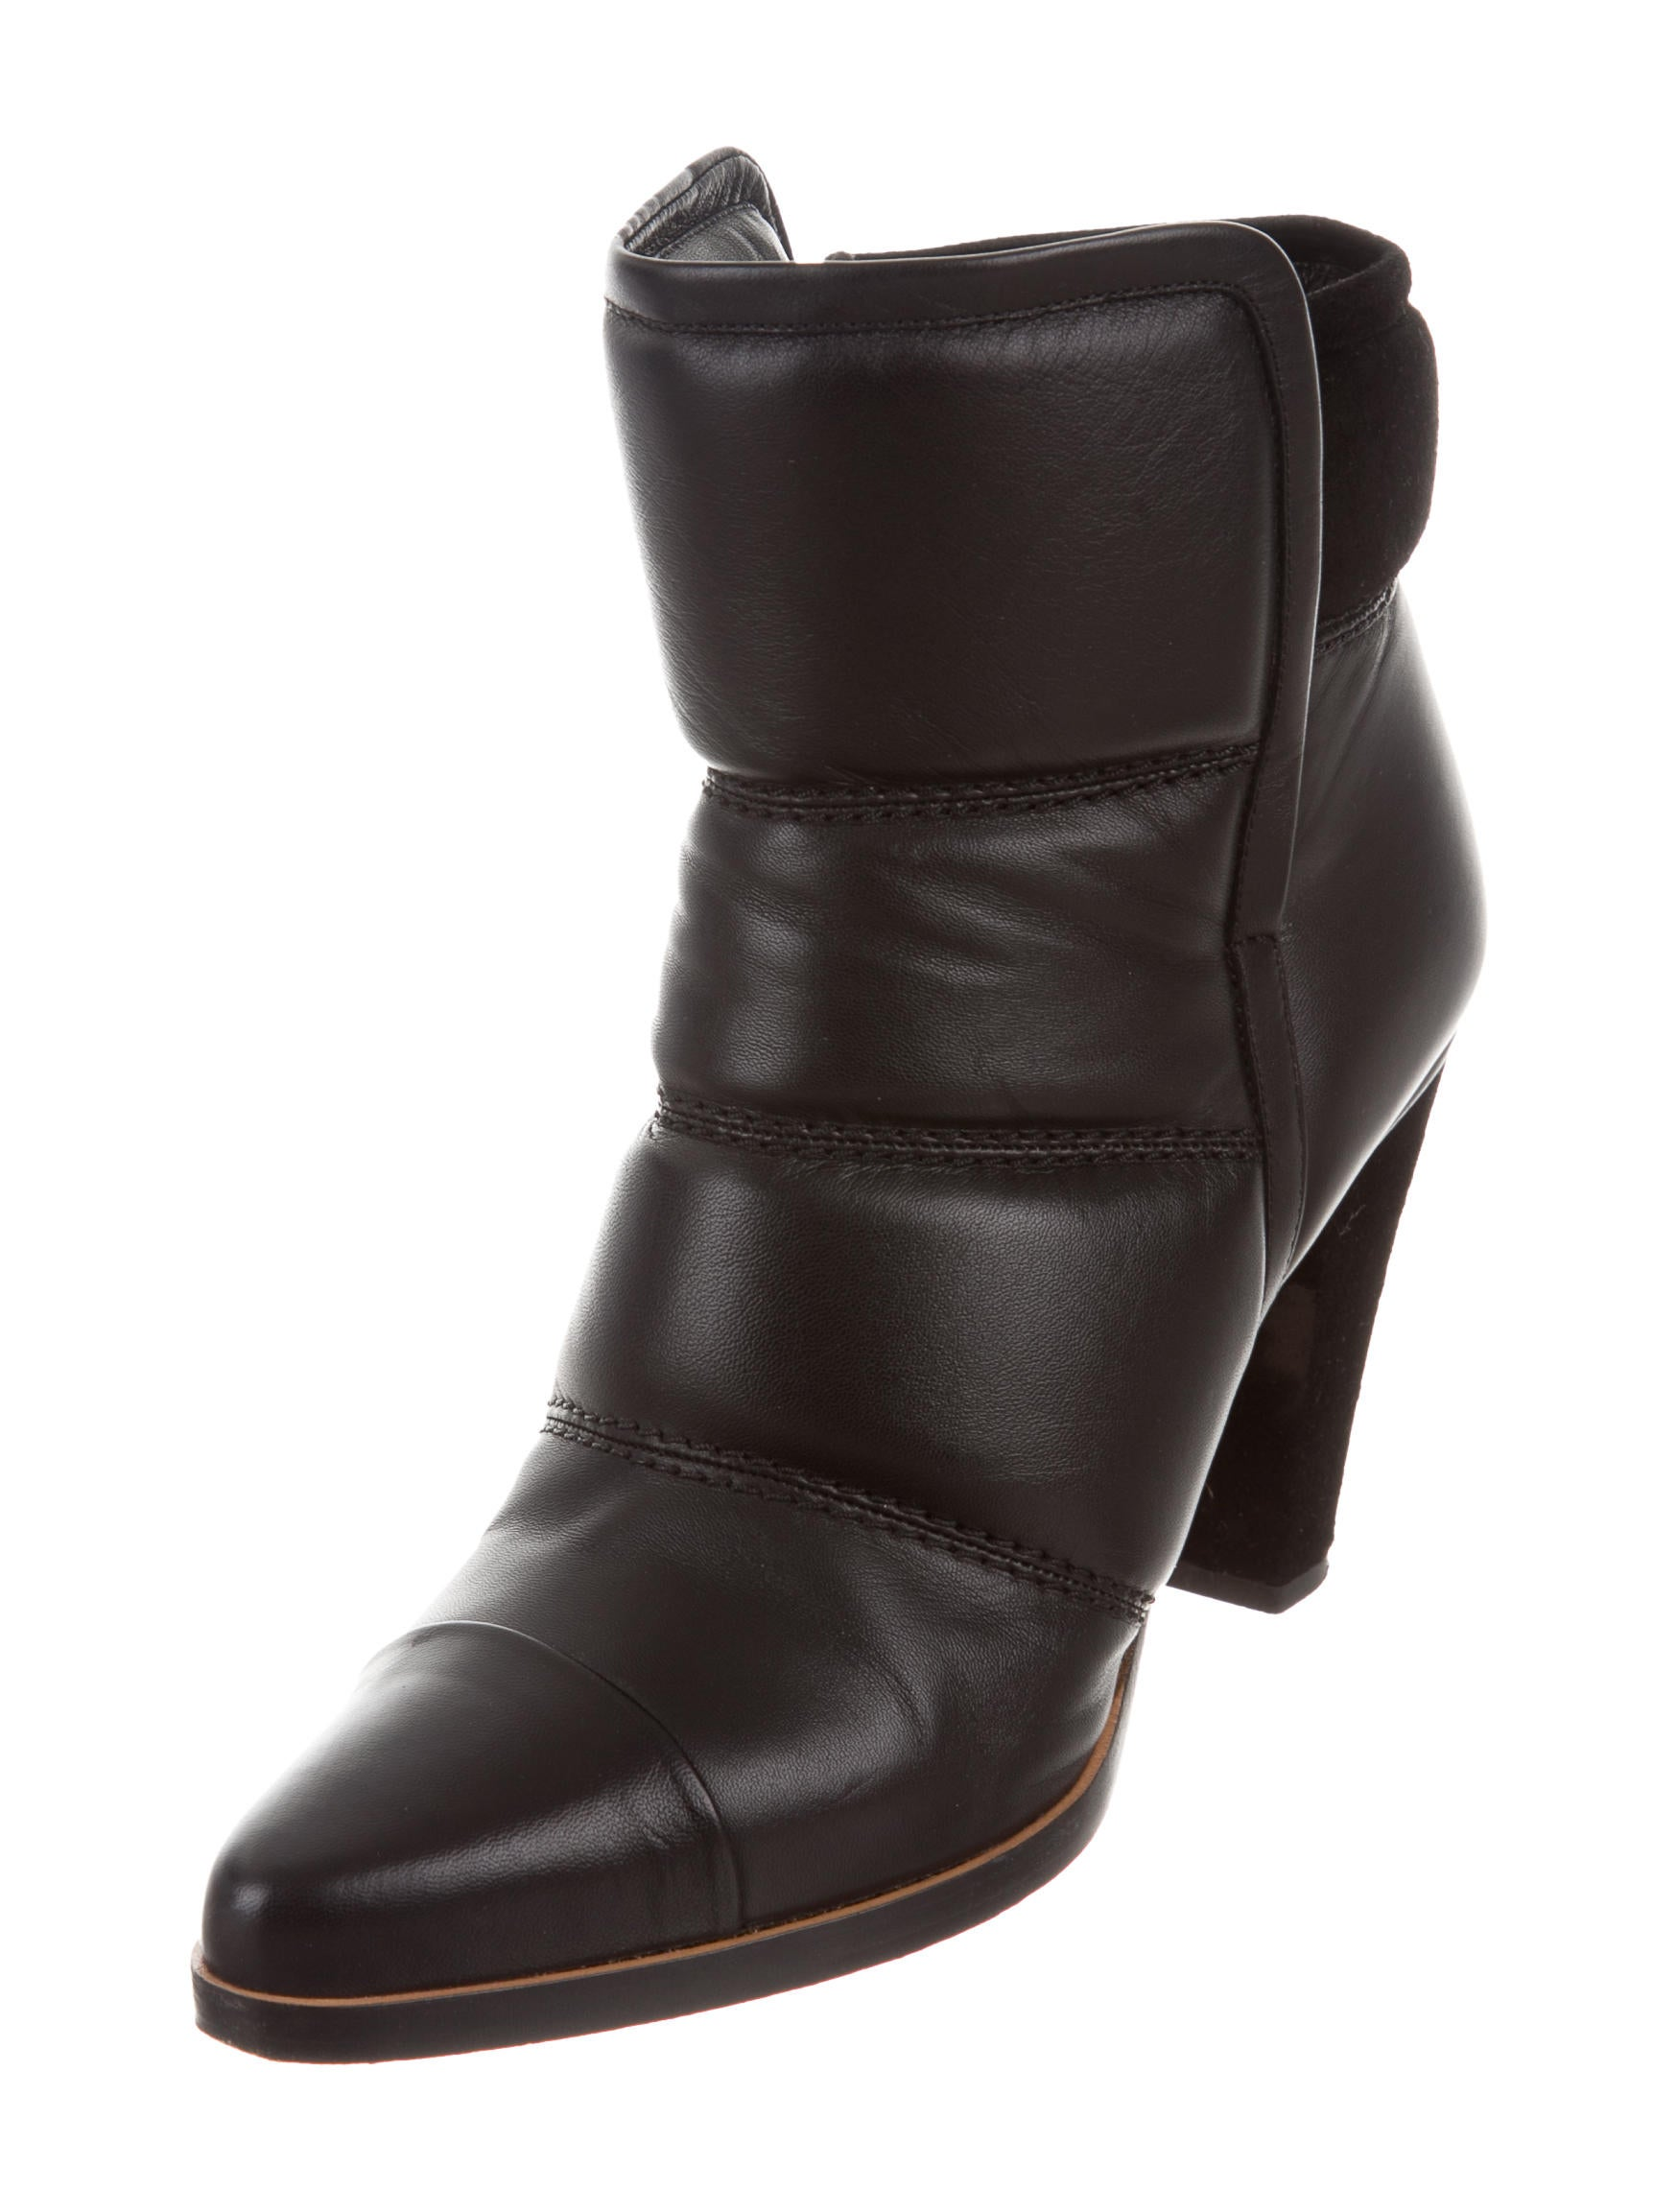 chlo leather ankle boots shoes chl54835 the realreal. Black Bedroom Furniture Sets. Home Design Ideas